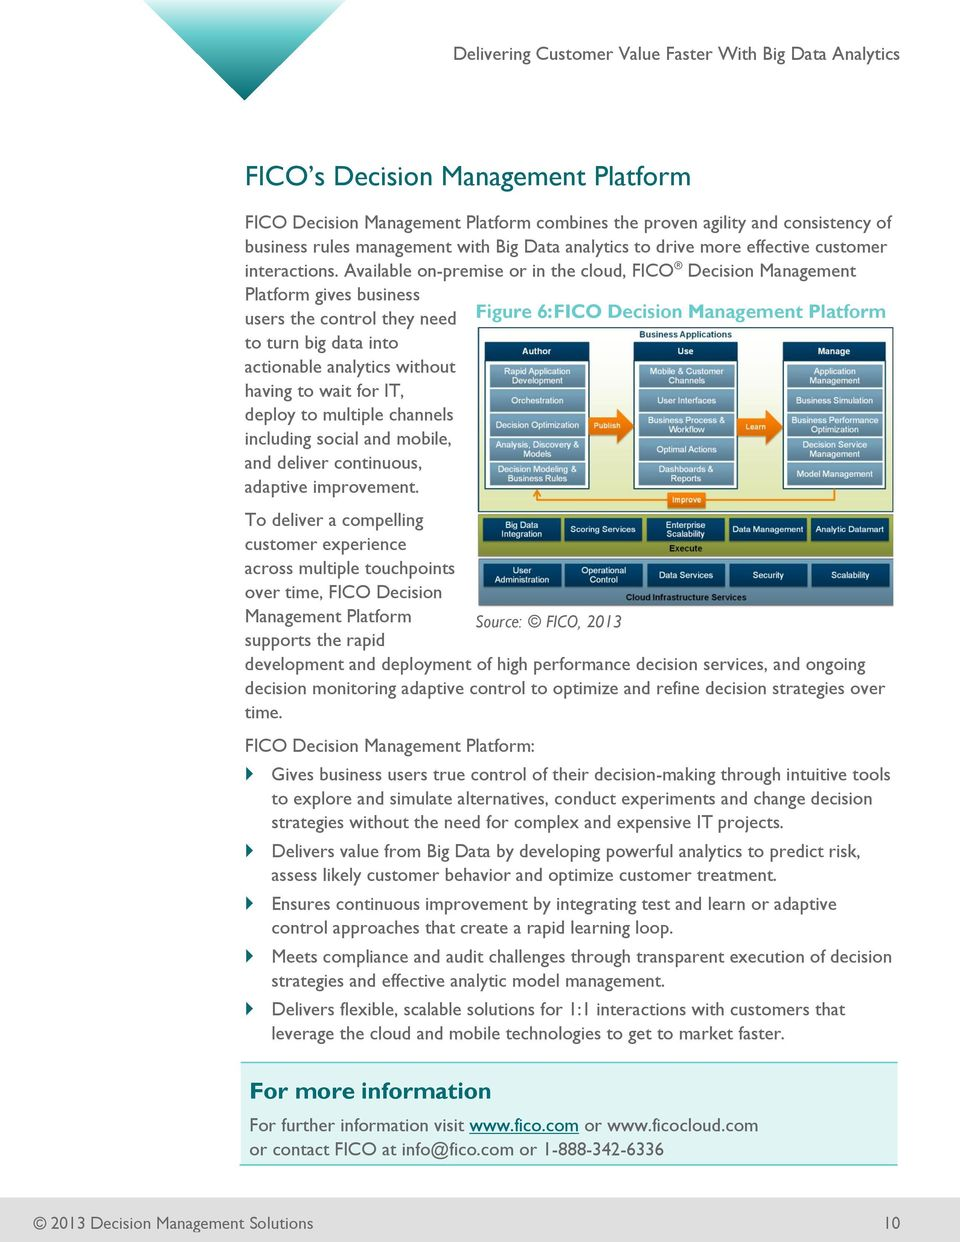 Available on-premise or in the cloud, FICO Decision Management Platform gives business users the control they need Figure 6: FICO Decision Management Platform to turn big data into actionable